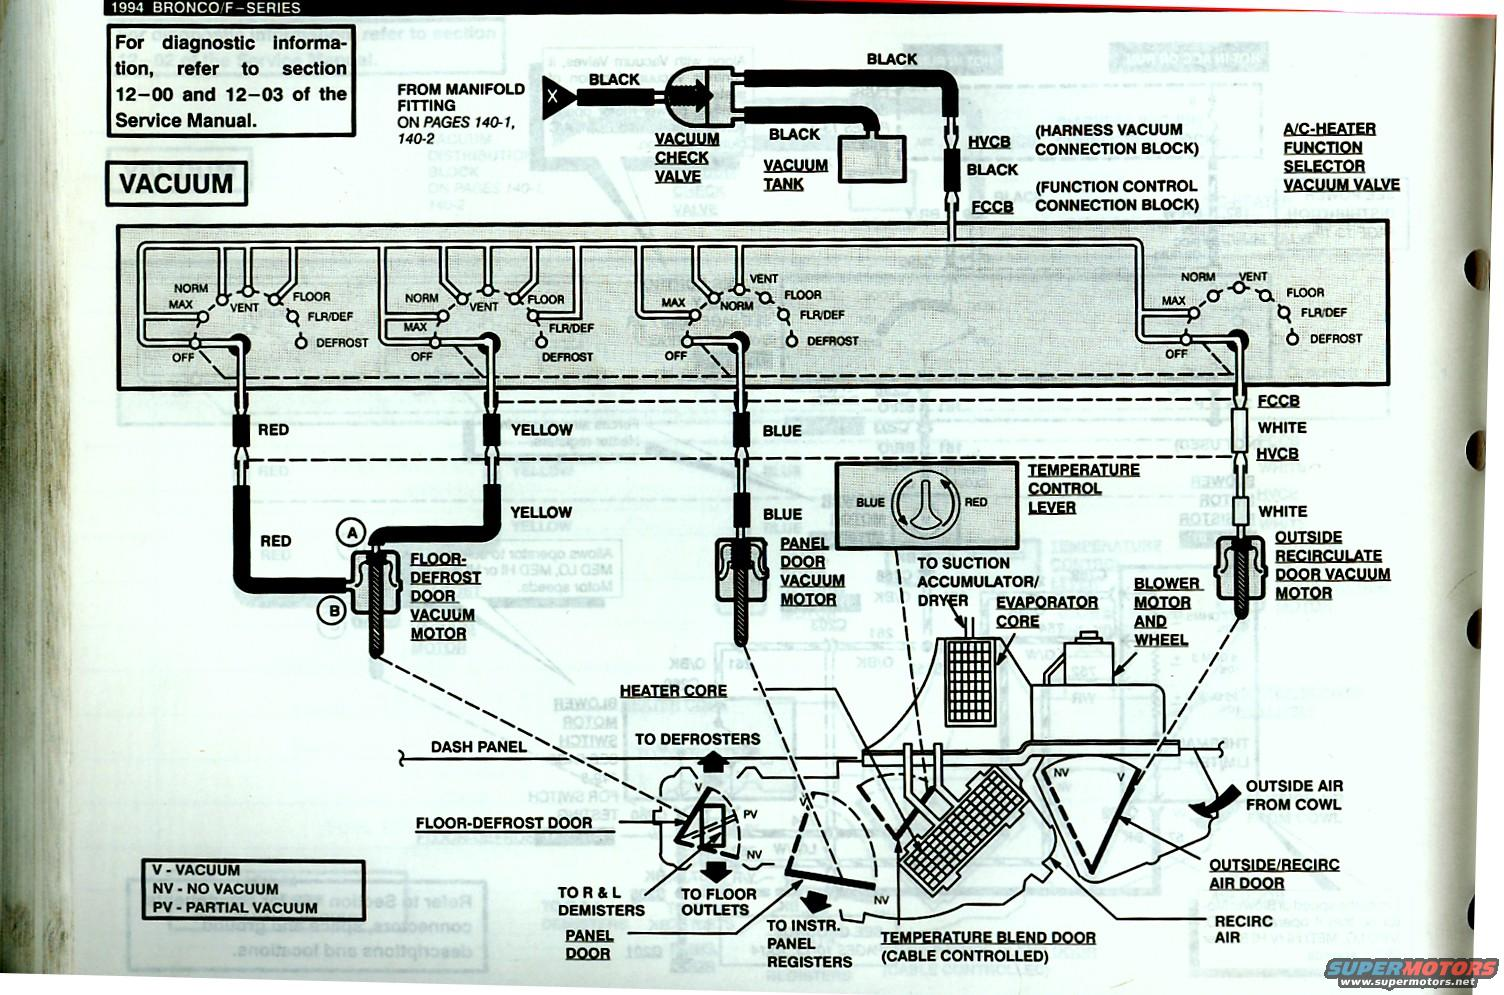 hight resolution of vacuum schematic for 5 8l ford bronco forumsource by richard b